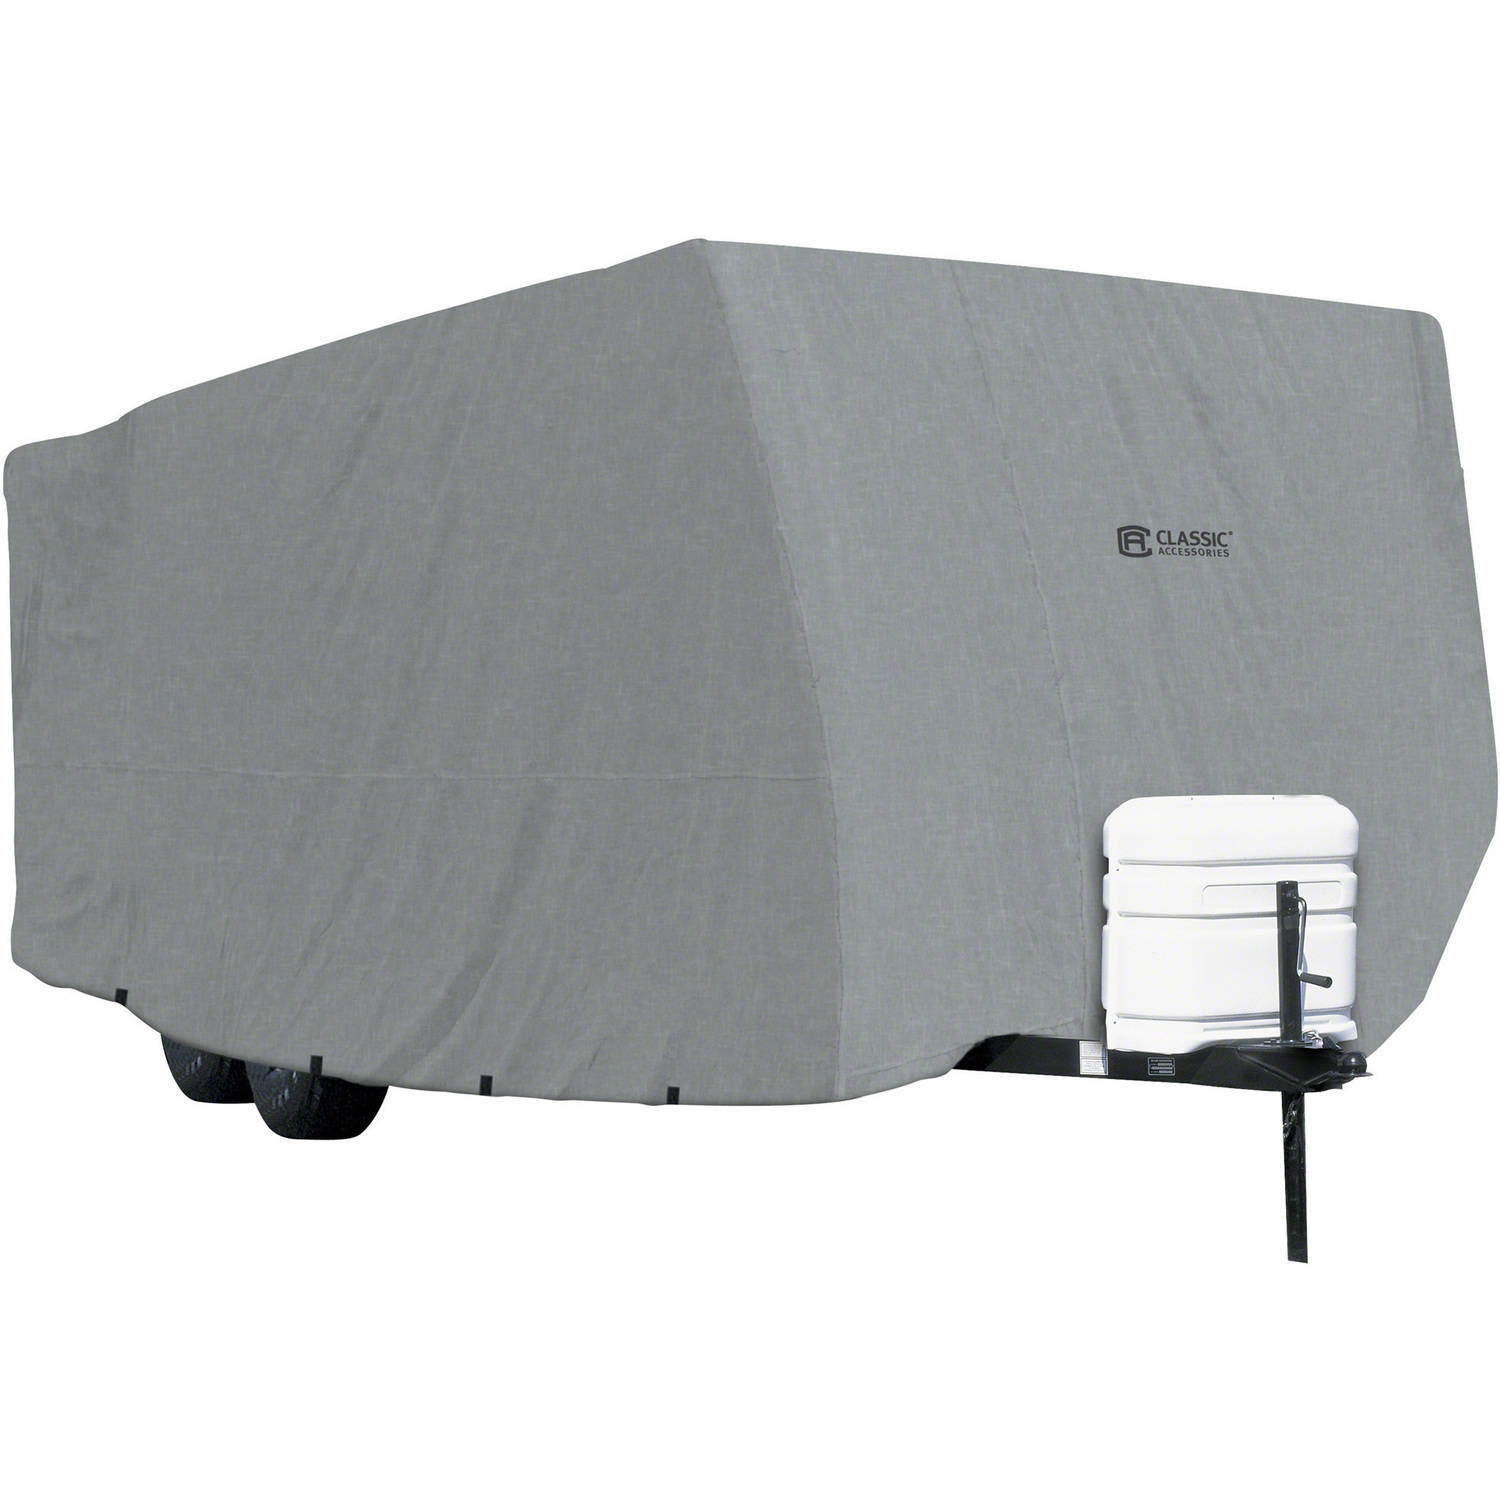 Classic Accessories OverDrive PolyPRO 1 Travel Trailer RV Cover, Fits 20' - 38' RVs - Breathable and Water Repellant Travel Trailer Cover